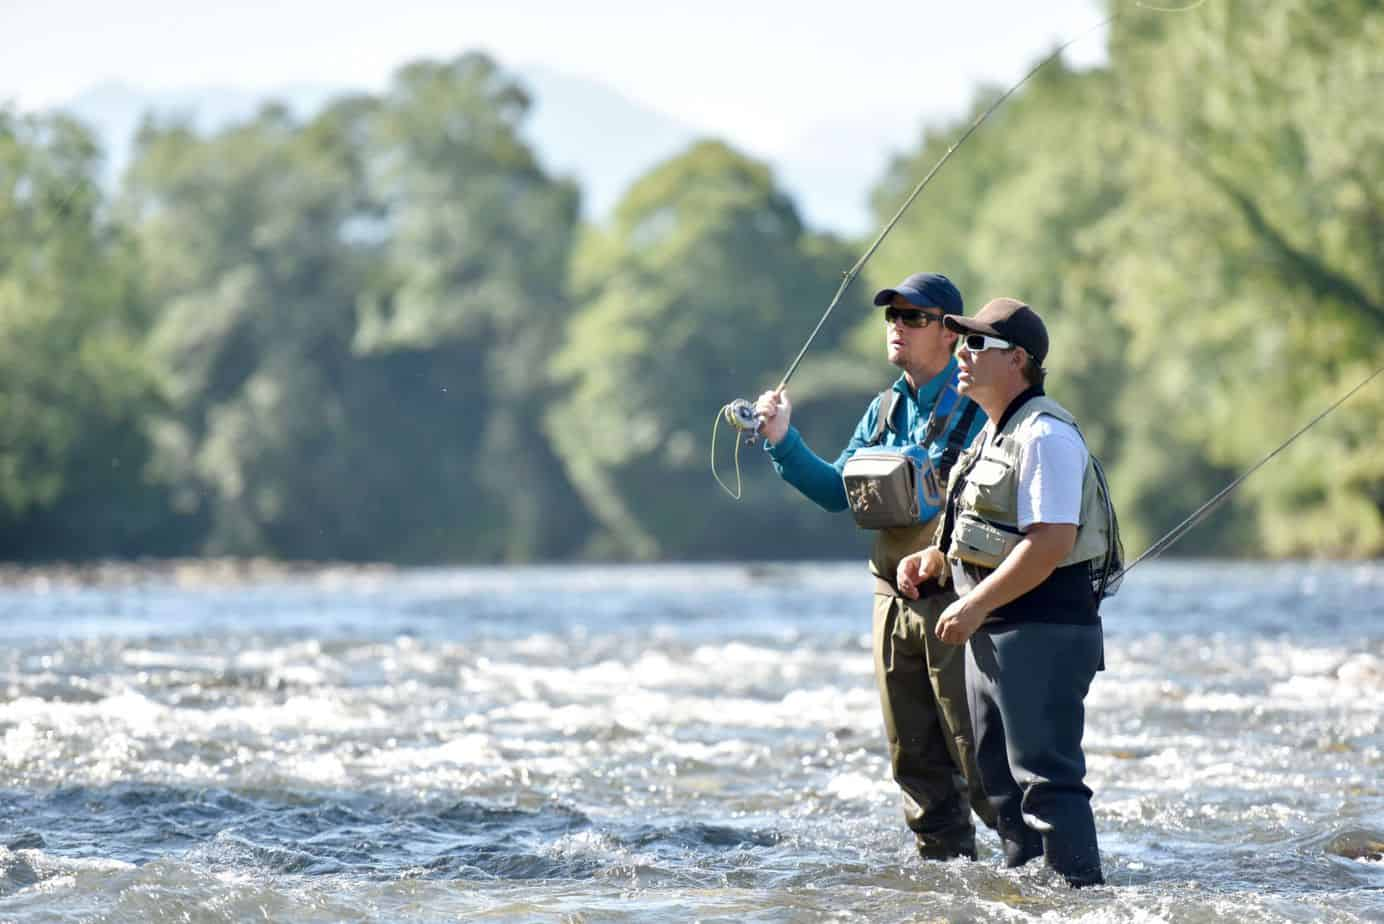 Should I hire a fly fishing guide?